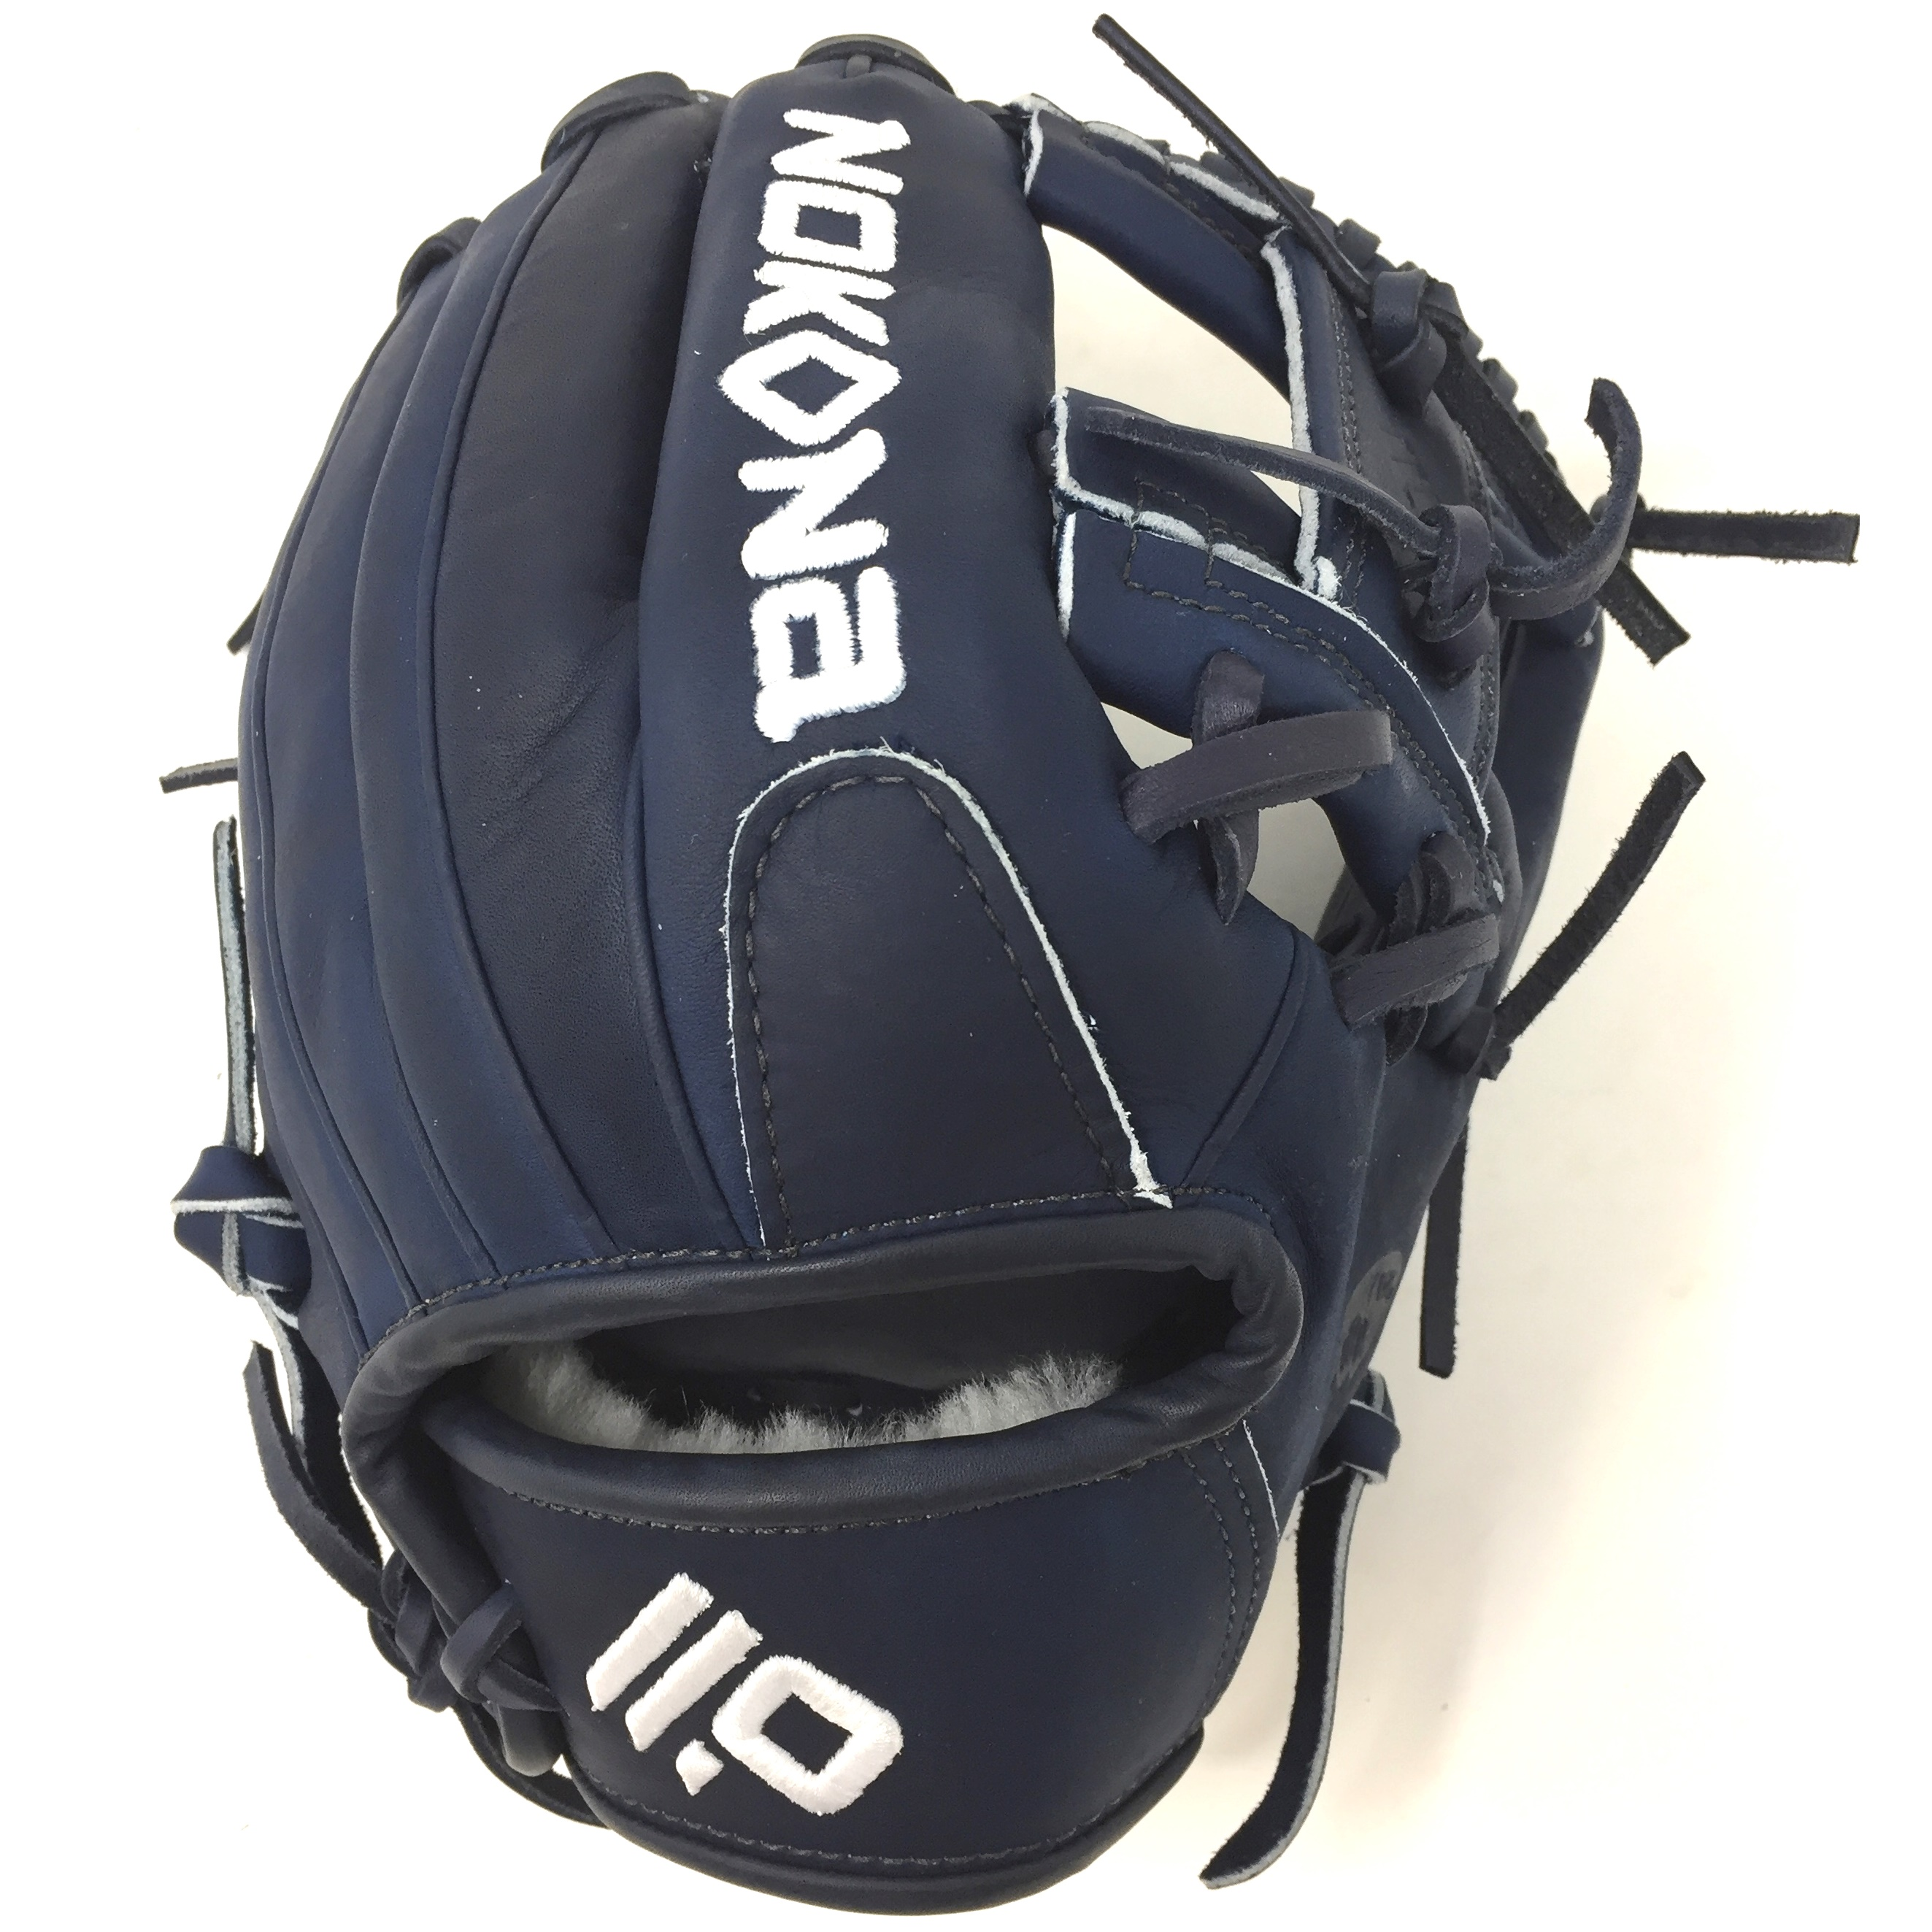 nokona-cobalt-xft-i-web-11-5-inch-xft-1150-baseball-glove-right-hand-throw XFT-1150I-CO-RightHandThrow Nokona 808808891369 <span>The all new limited edition Cobalt-XFT from Nokona is constructed from